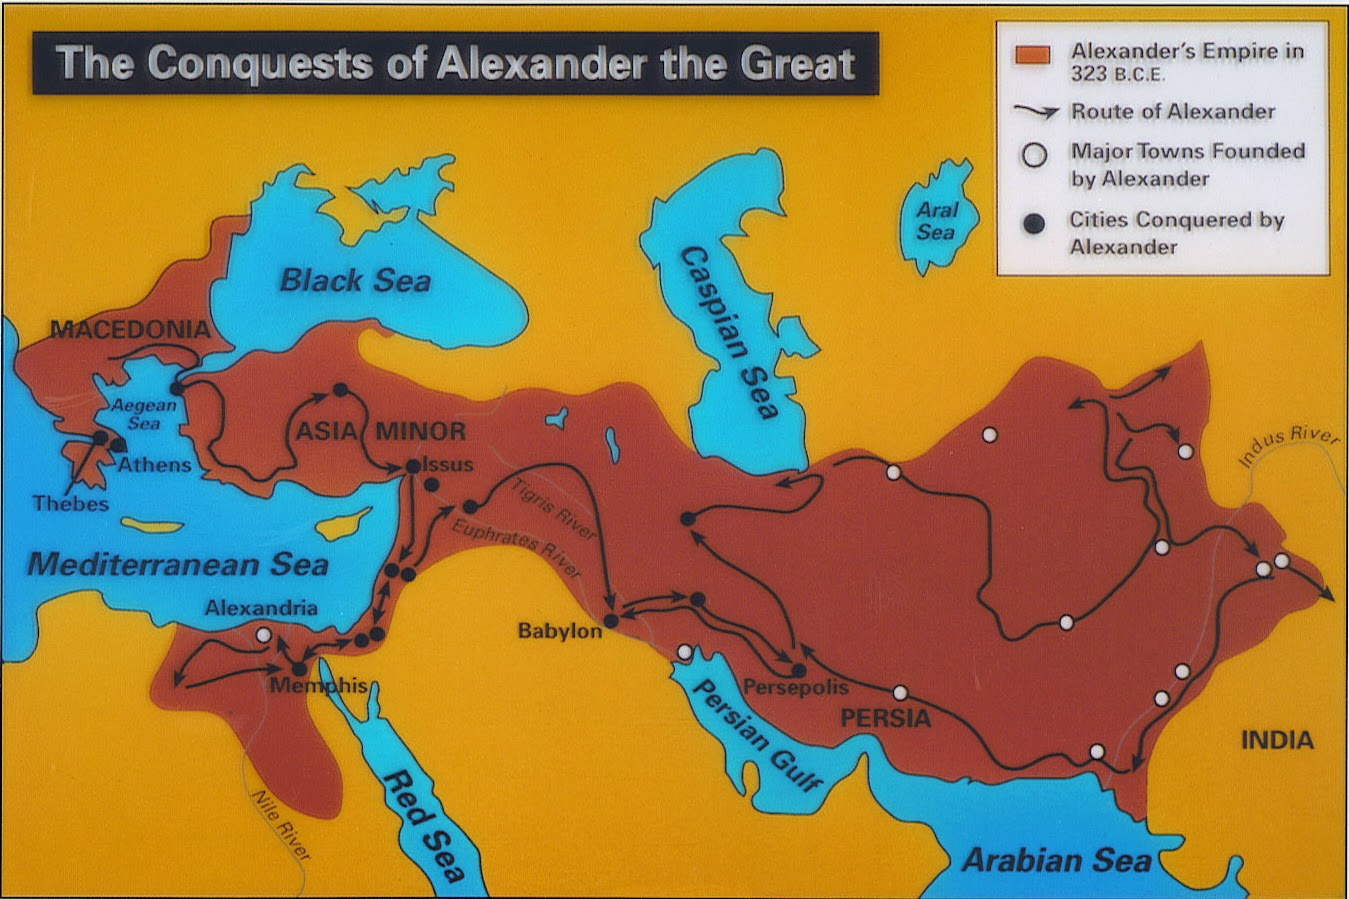 account of the life and conquests of alexander the great The wars of alexander the great were fought by king now fearing for both his throne and his life, sent a letter to alexander in which he promised to pay a substantial london isbn -14-200140-6 brief collection of ancient accounts translated into english larsen, jakob a o alexander.